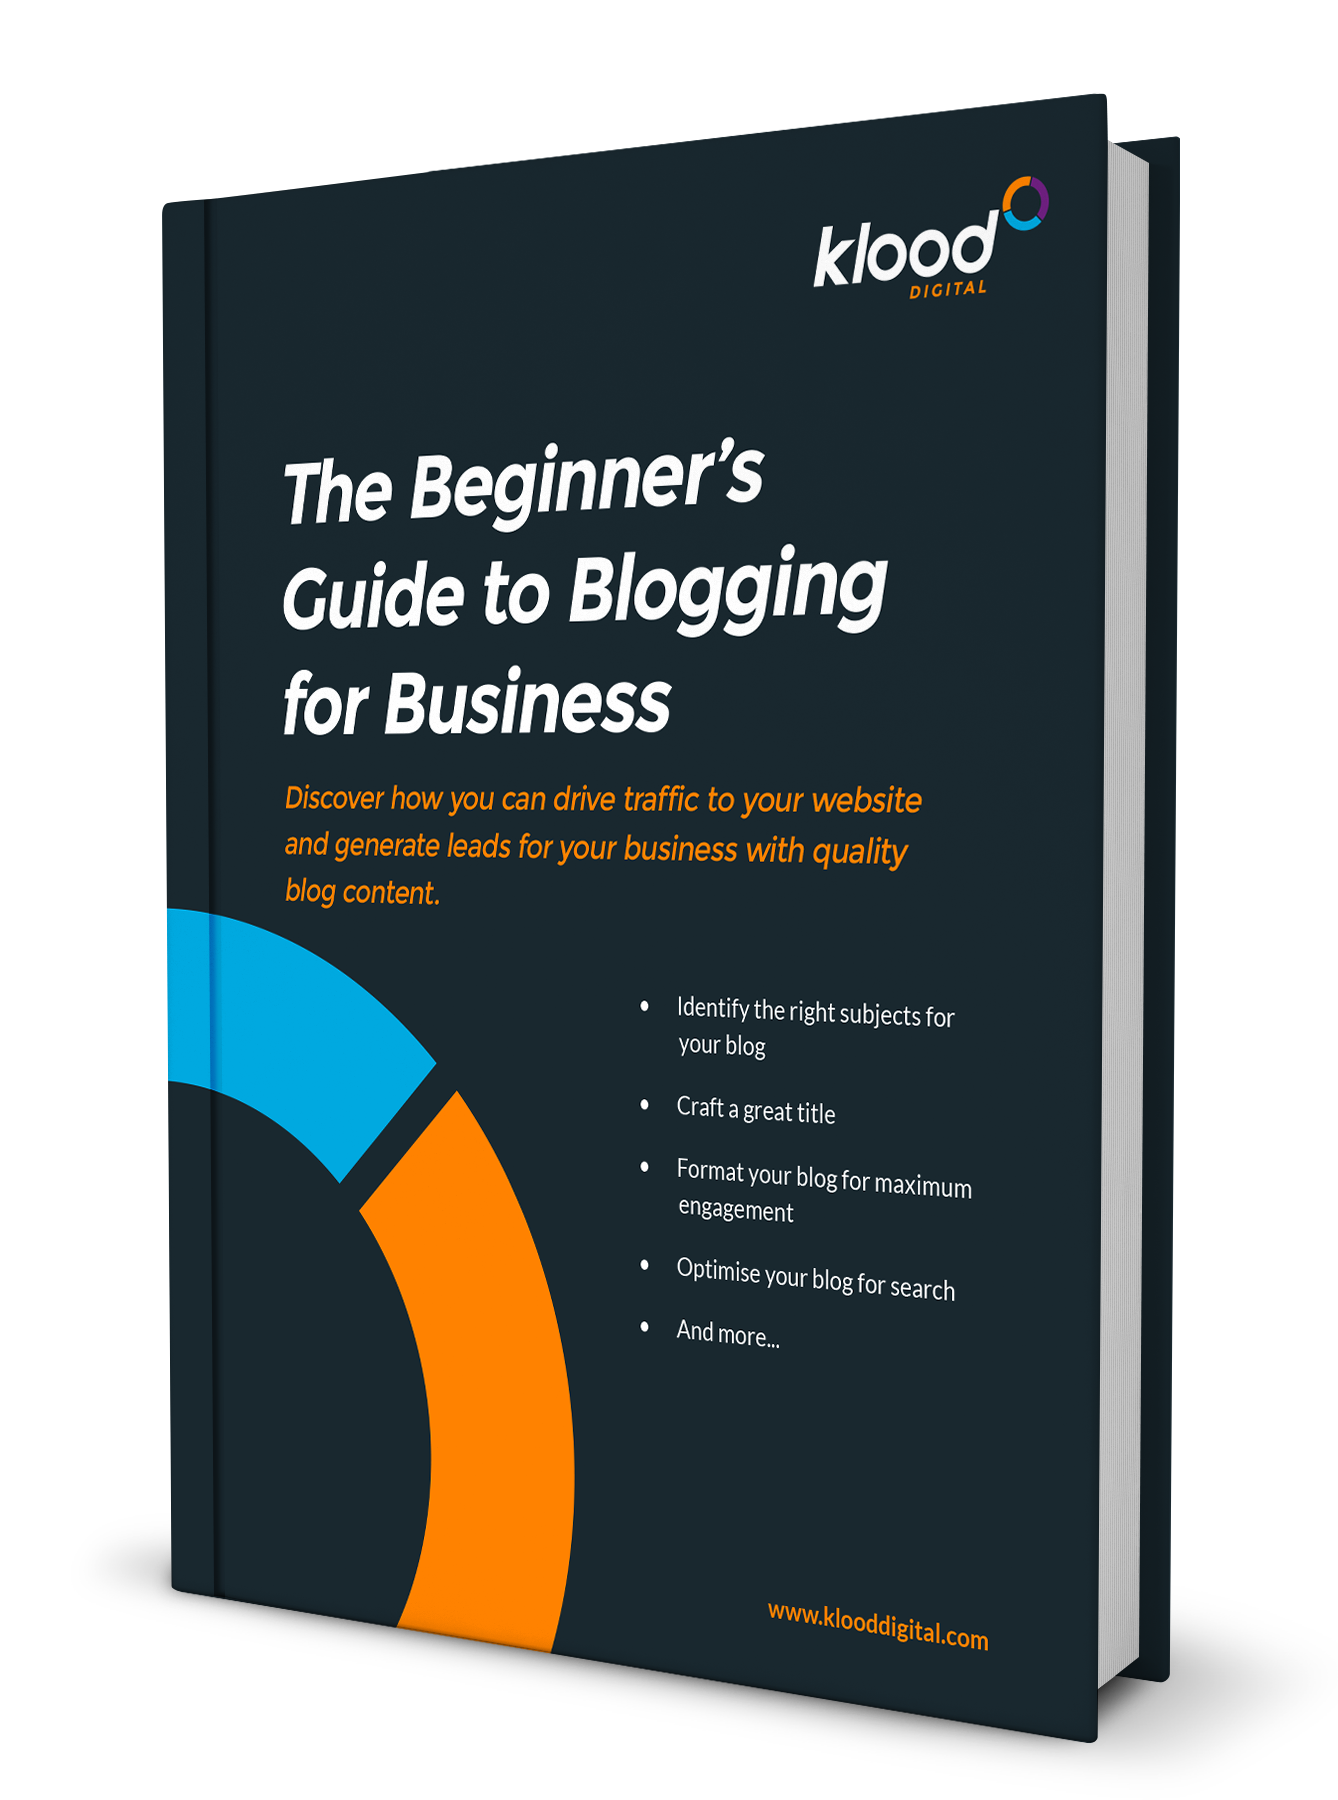 Klood Book - Guide to Blogging for Business